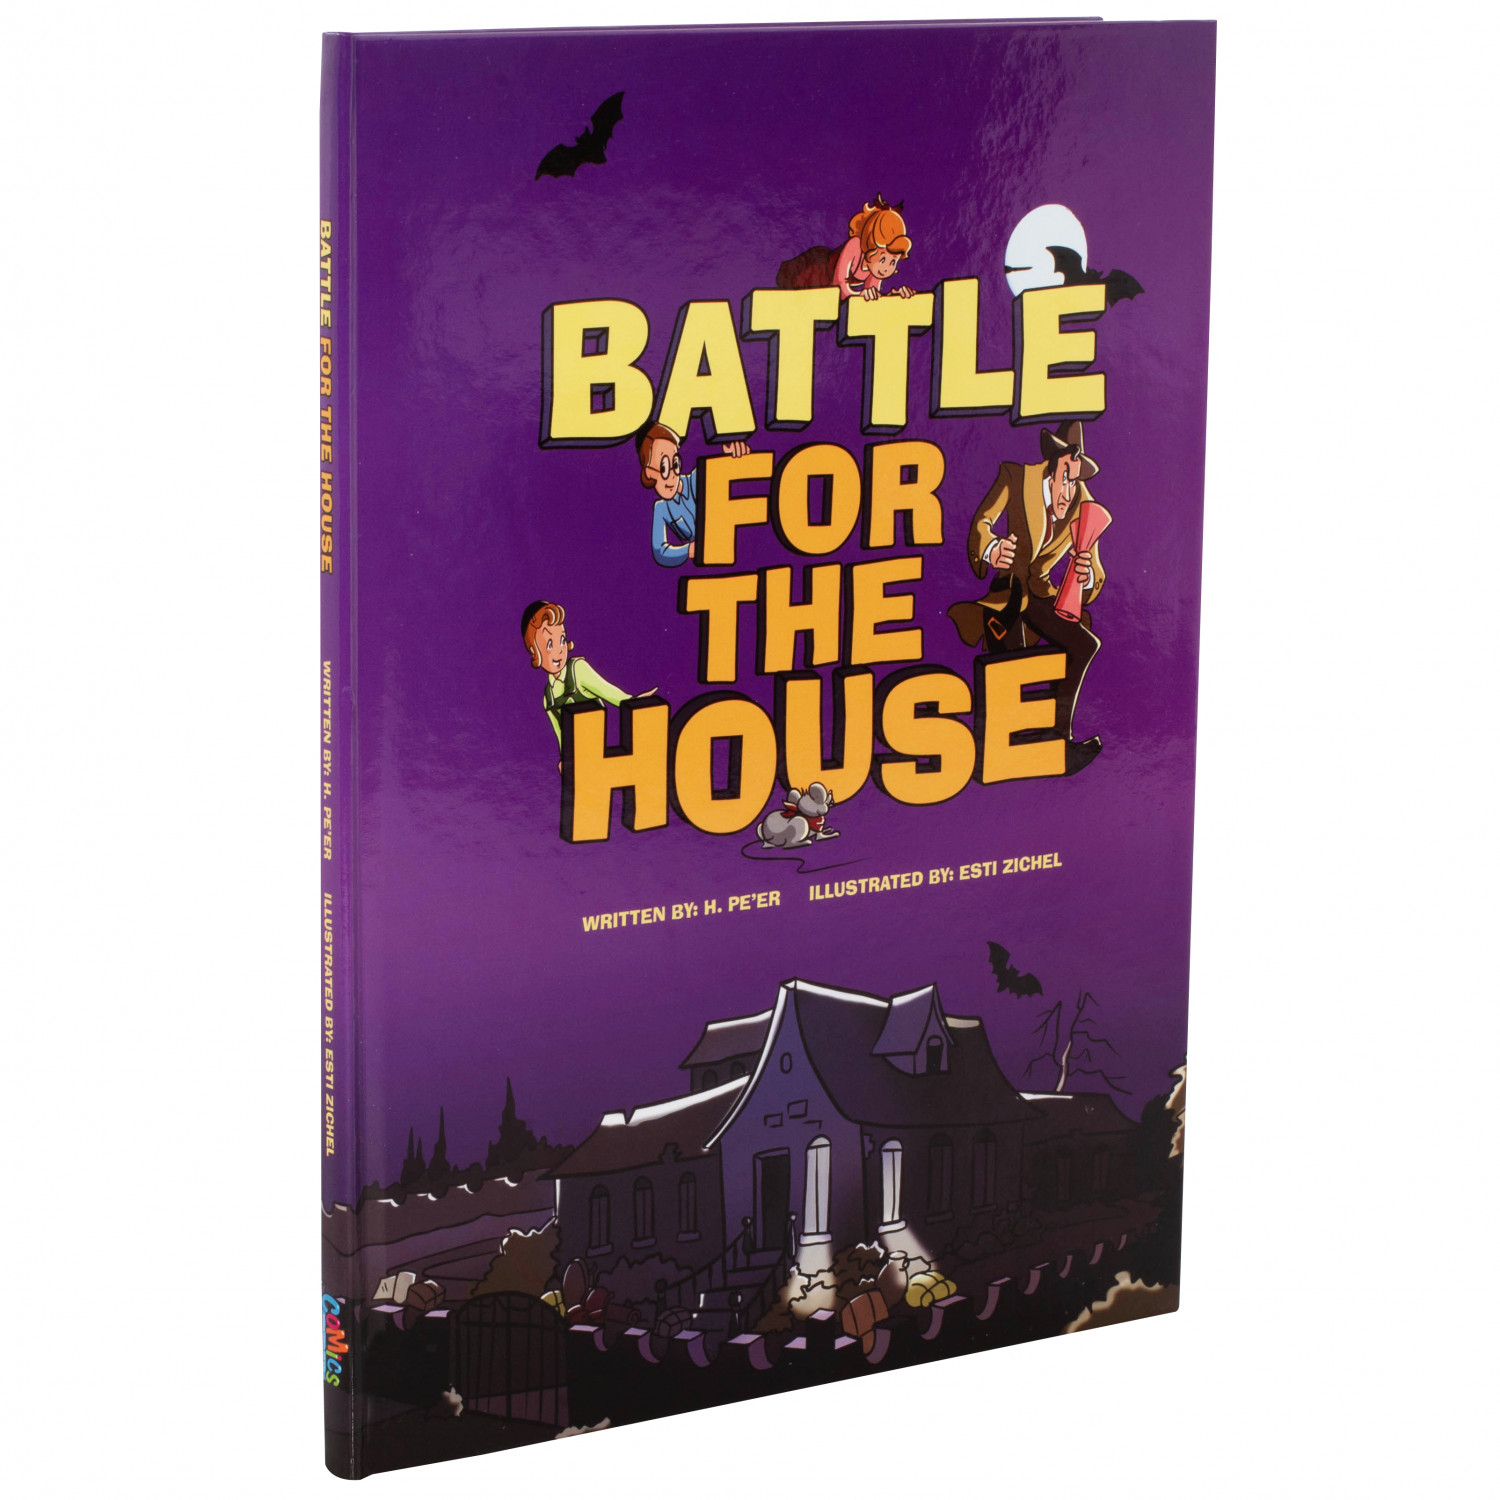 Battle for the House